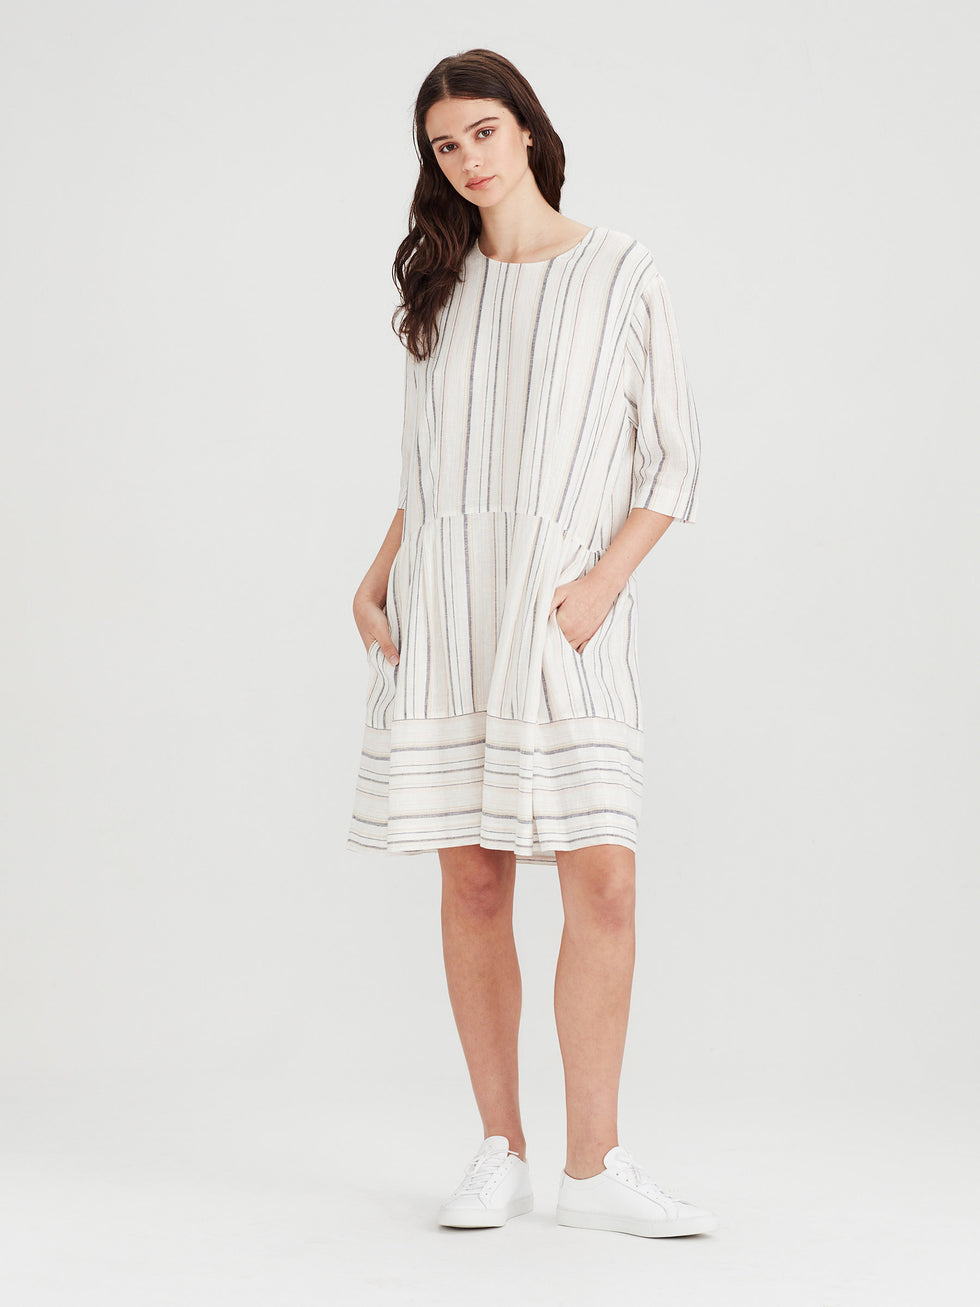 Ellie Tunic (Summer Stripe Linen) Candy